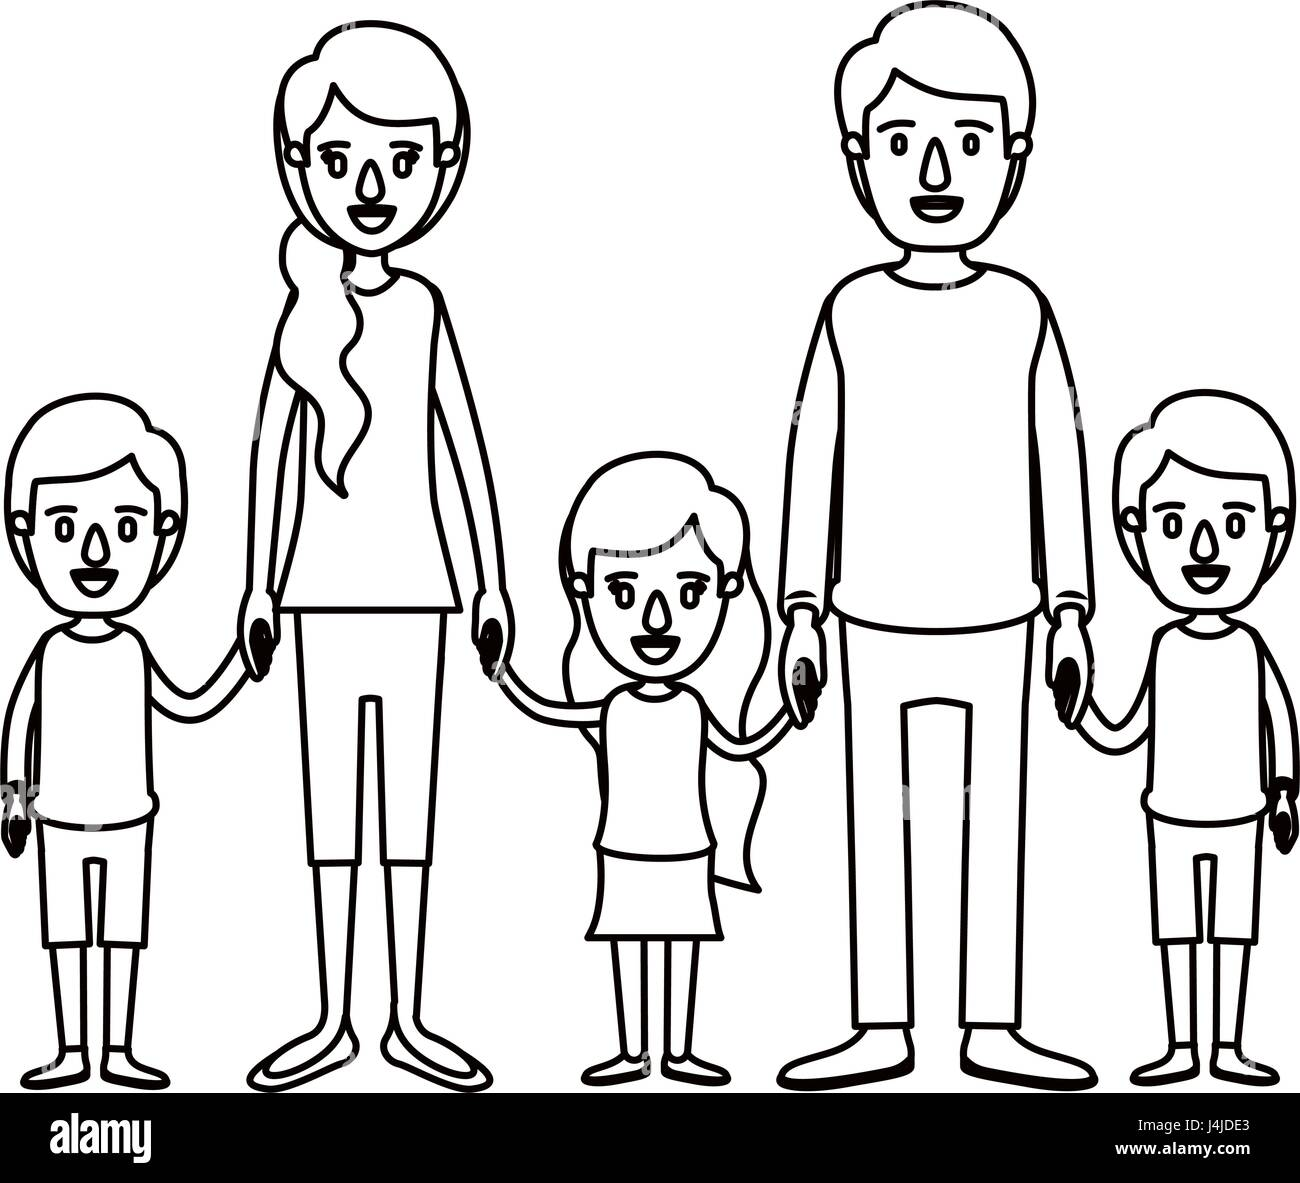 silhouette caricature family with young parents and little kids taken hands - Stock Vector